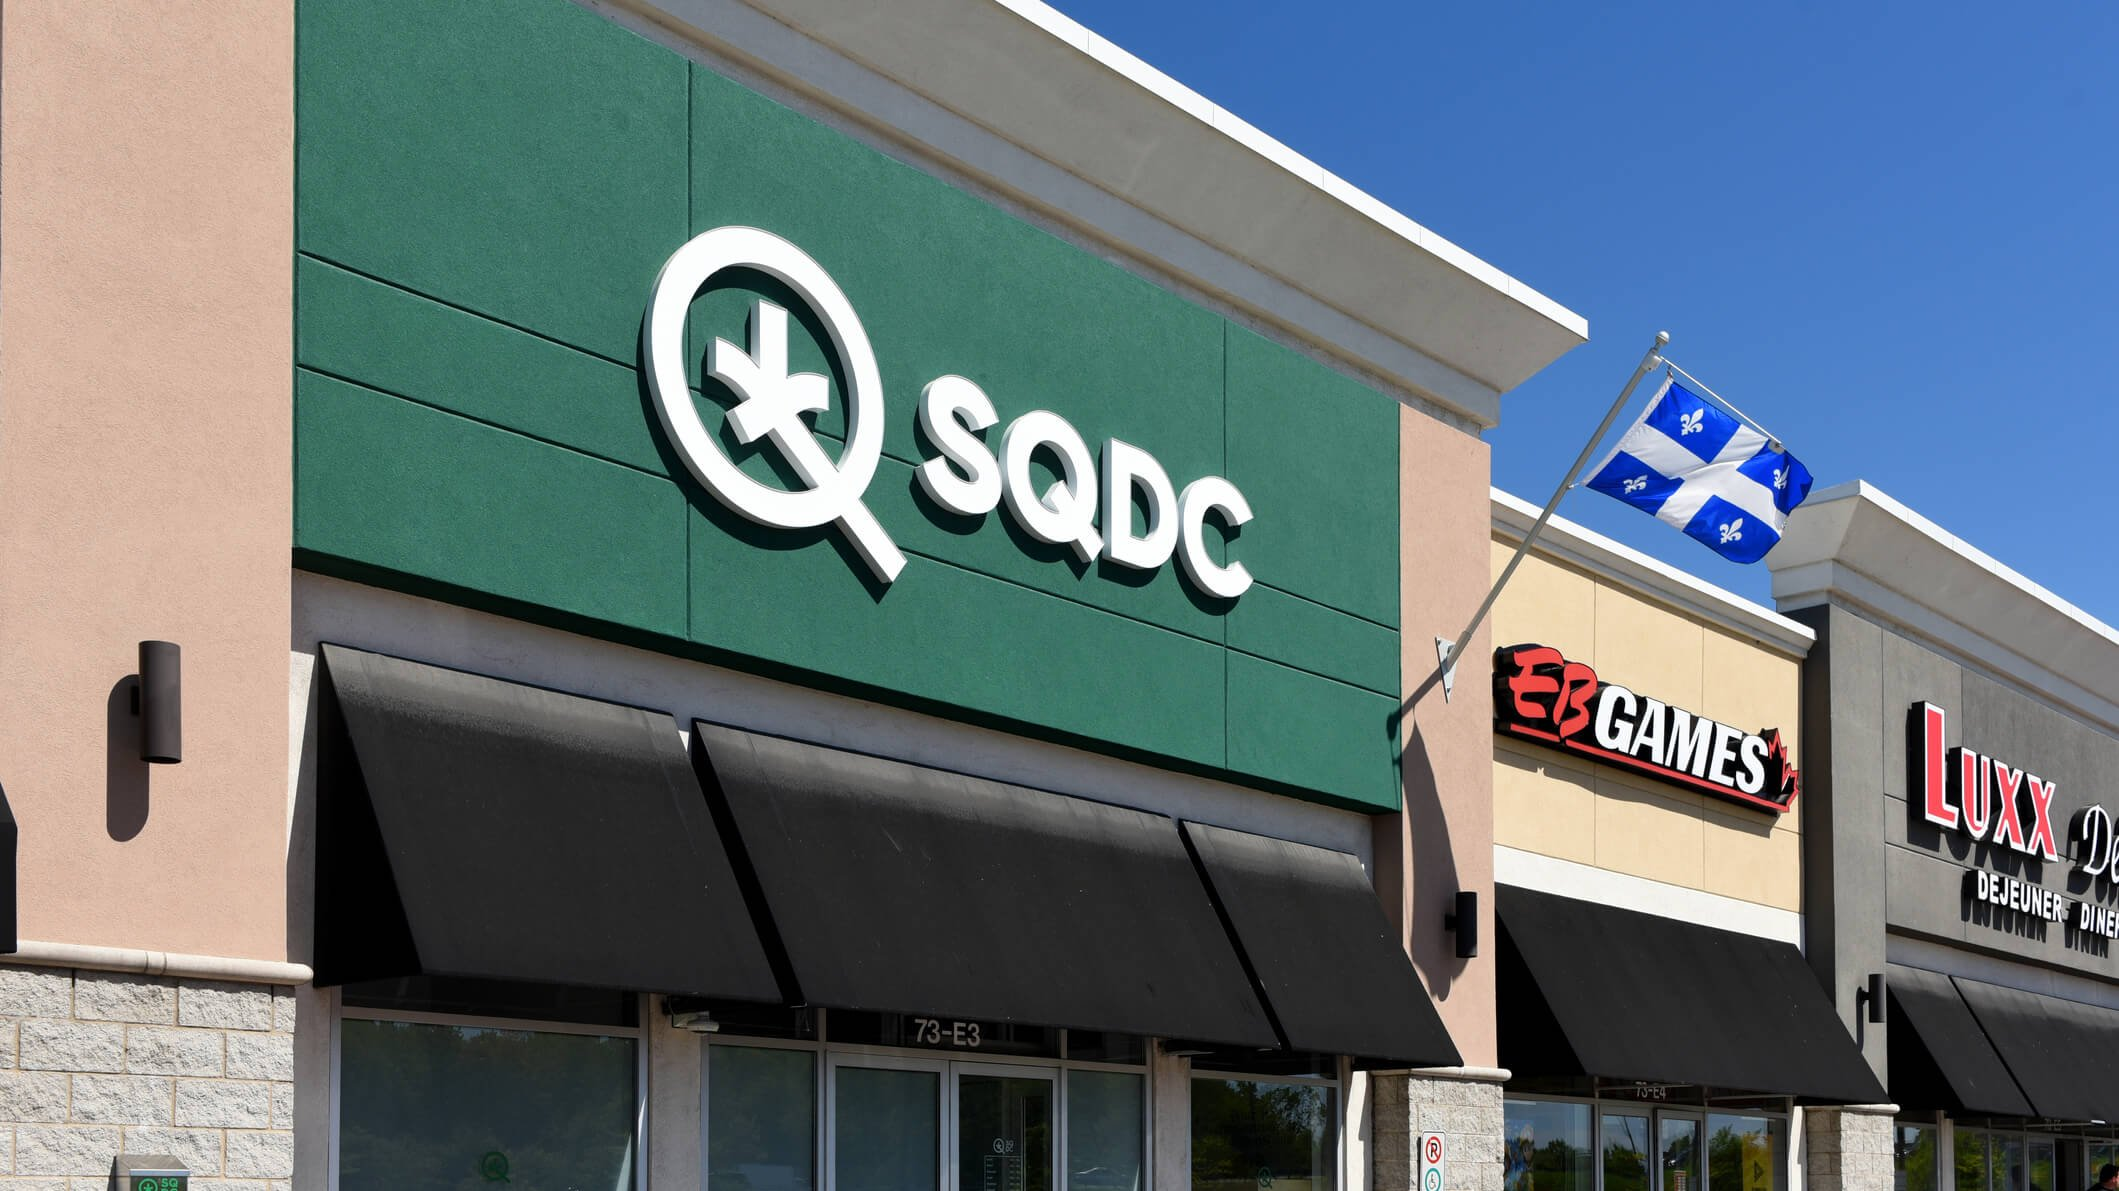 Gatineau, Quebec, Canada - June 8. 2019: Quebec Cannabis Corporation (SDQC) store in a strip mall on Boulevard de la Gappe. The provincially owned corporation is responsible for the sale of recreational cannabis in the province has been in operation since cannabis became legal in Canada in 2018.